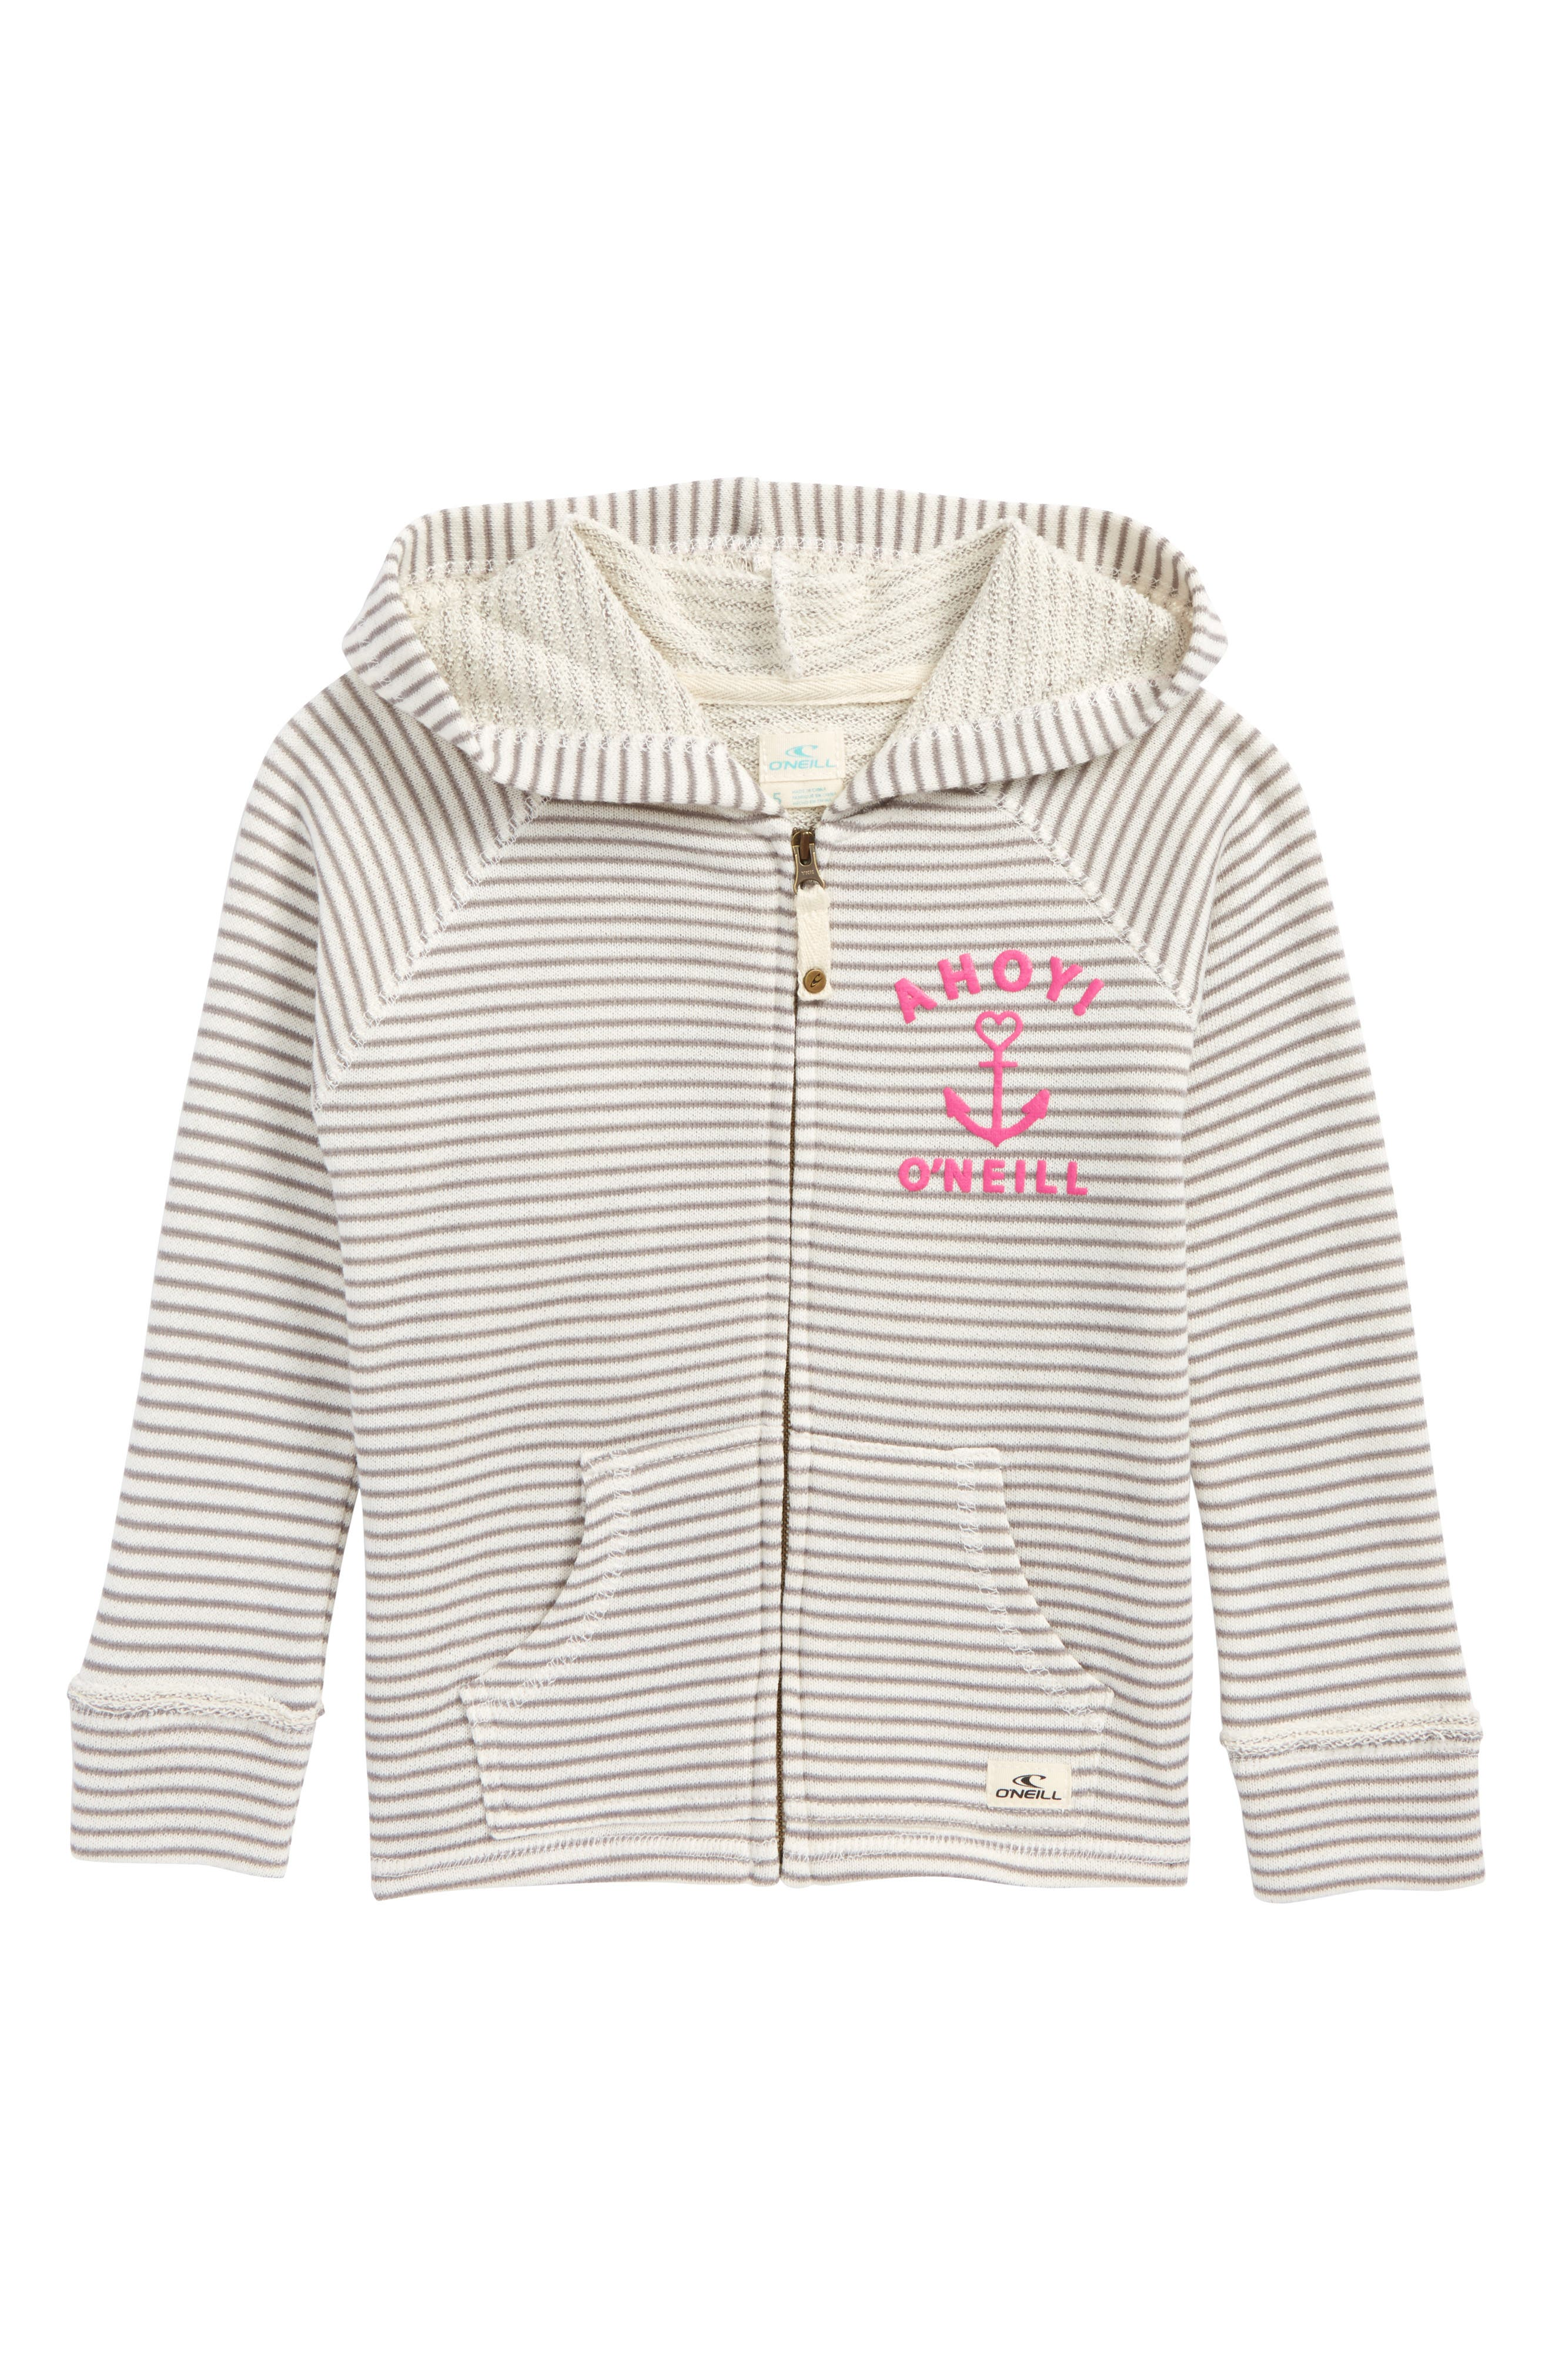 Shore French Terry Hoodie,                             Main thumbnail 1, color,                             Grey - Gry